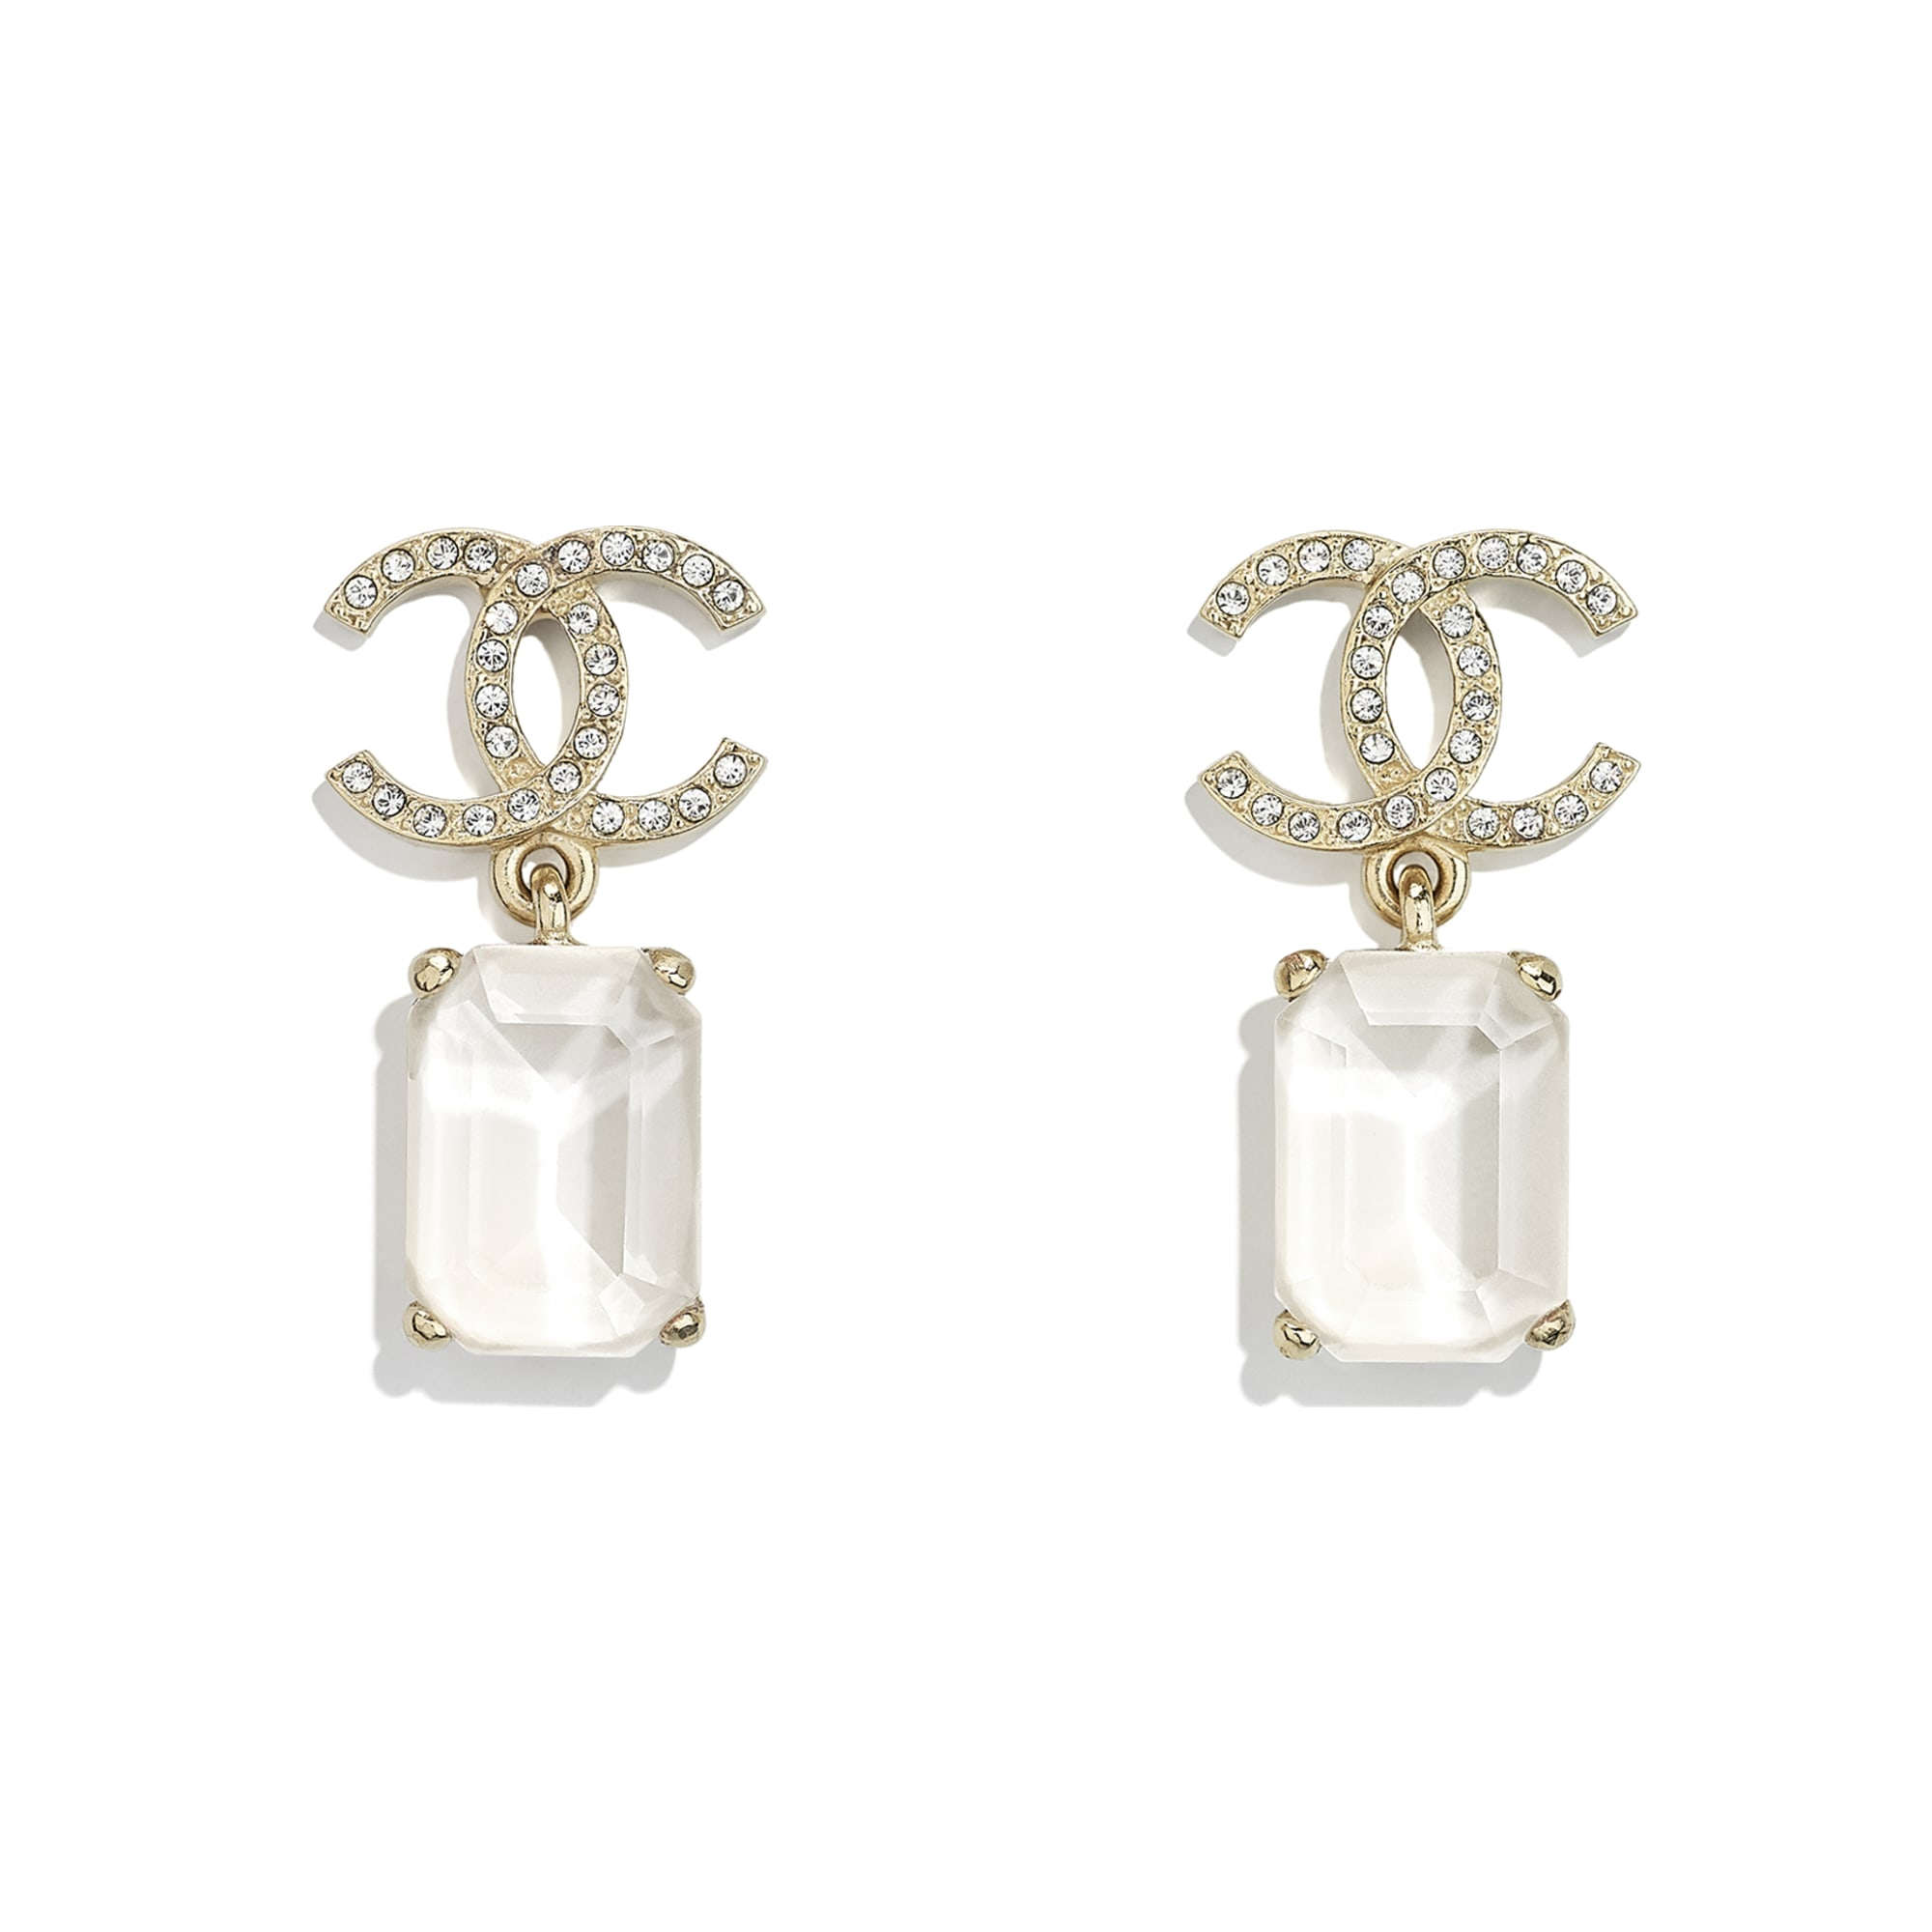 Earrings - Gold, White & Crystal - Metal & Diamantés - CHANEL - Default view - see standard sized version